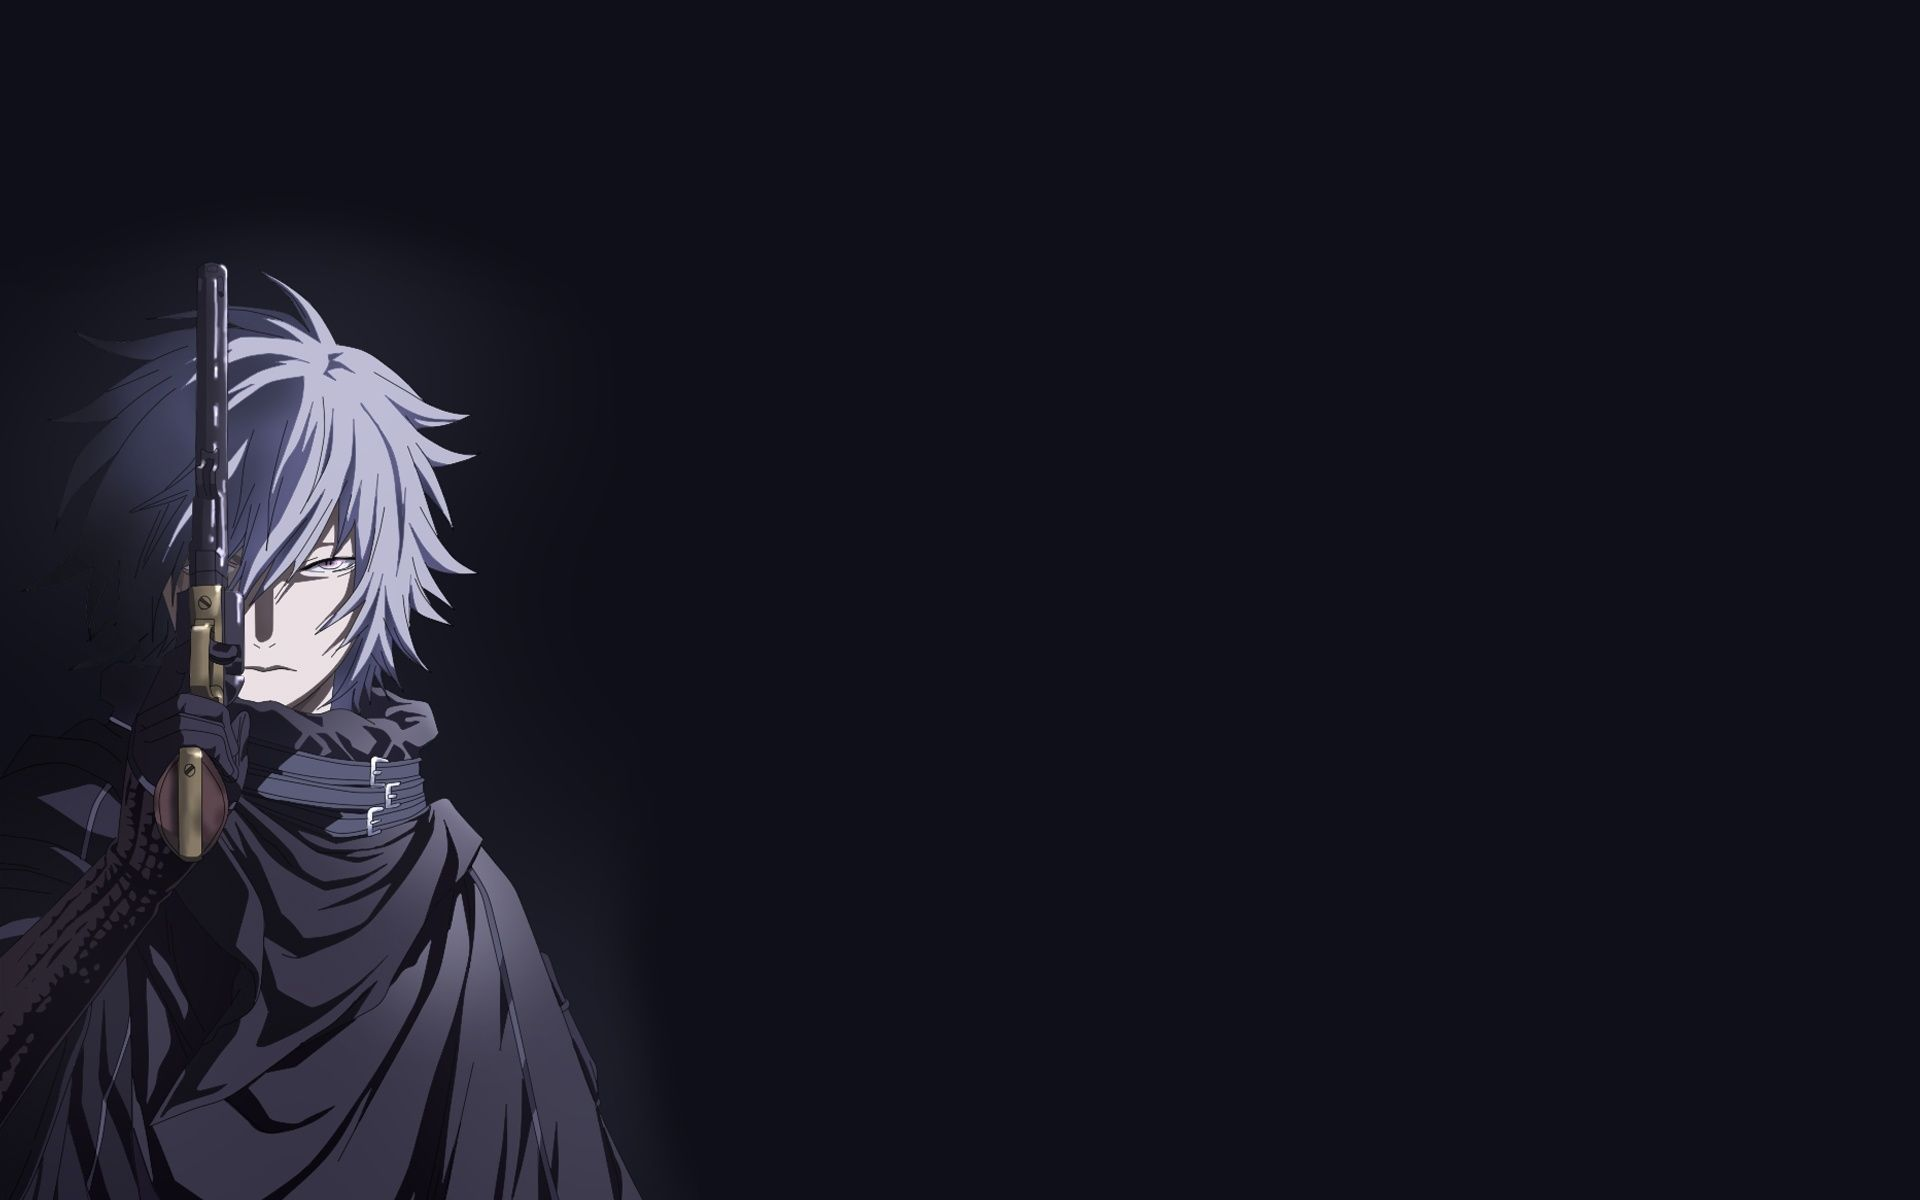 fotos dark anime wallpaper hd wallpapers dark anime wallpaper | live